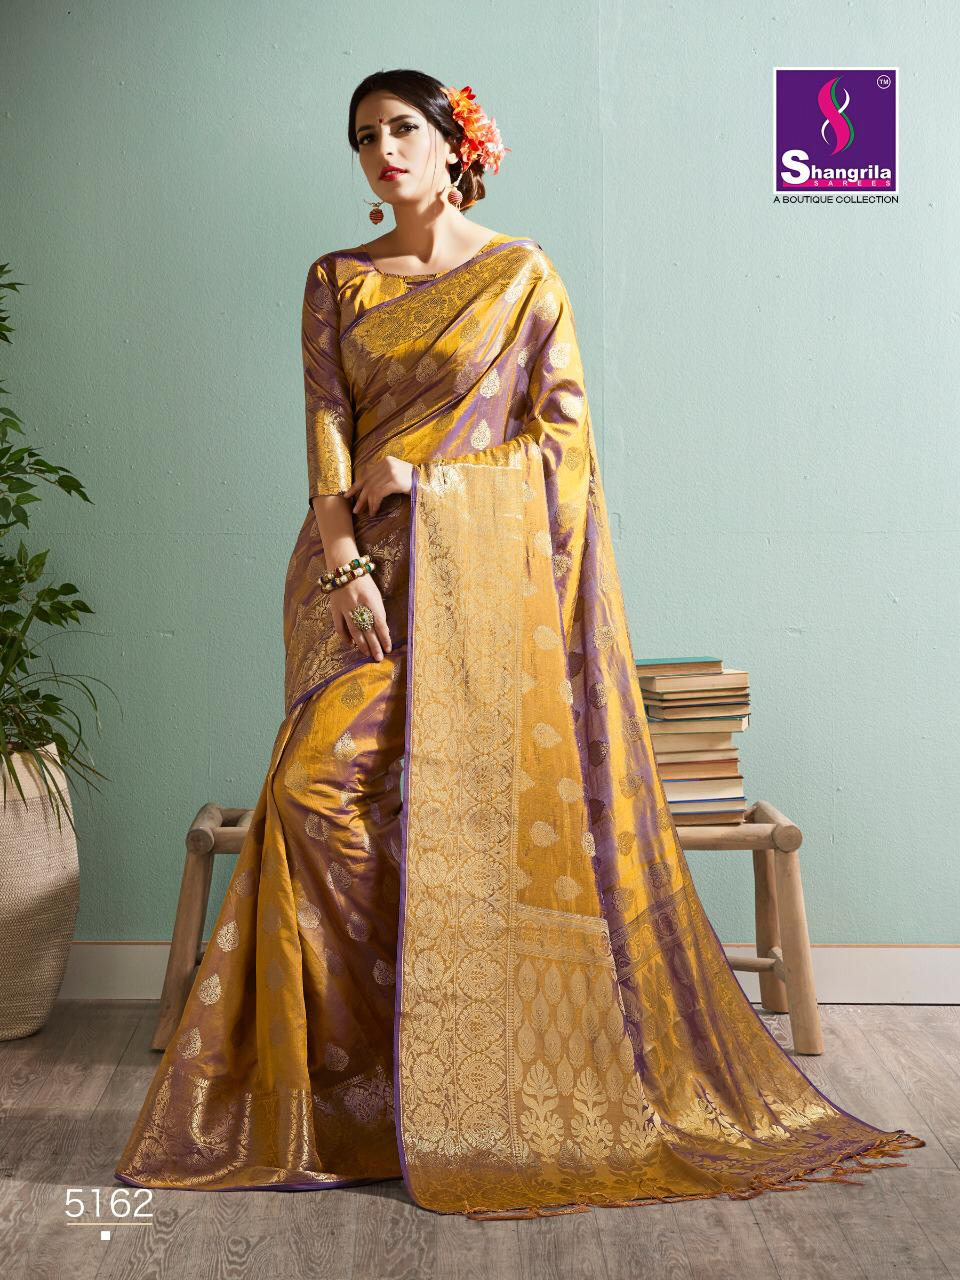 Shangrila Vasansi Silk 2 collection 7